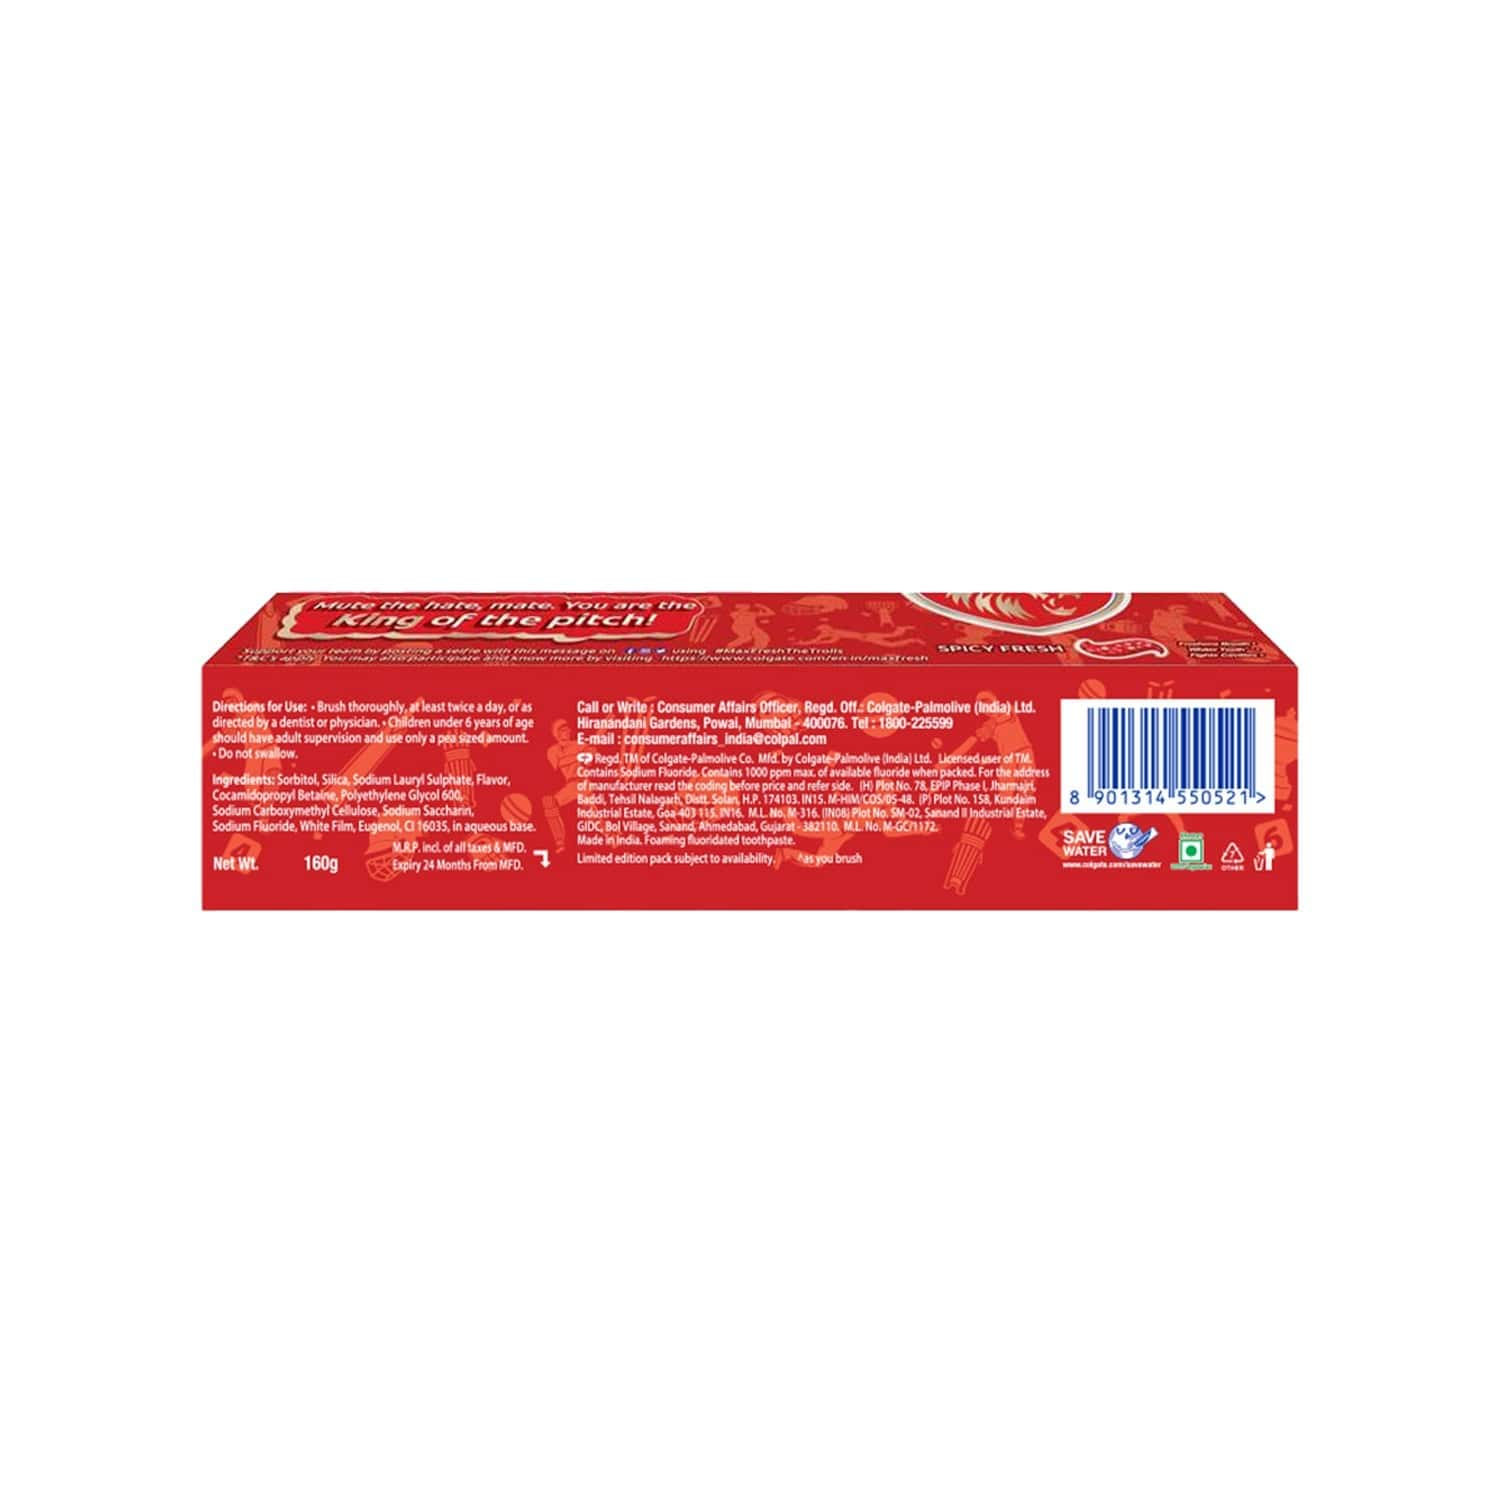 Colgate Maxfresh Red Spicy Fresh Gel Toothpaste - 160 Gm - Punjab Kings Special Edition Pack